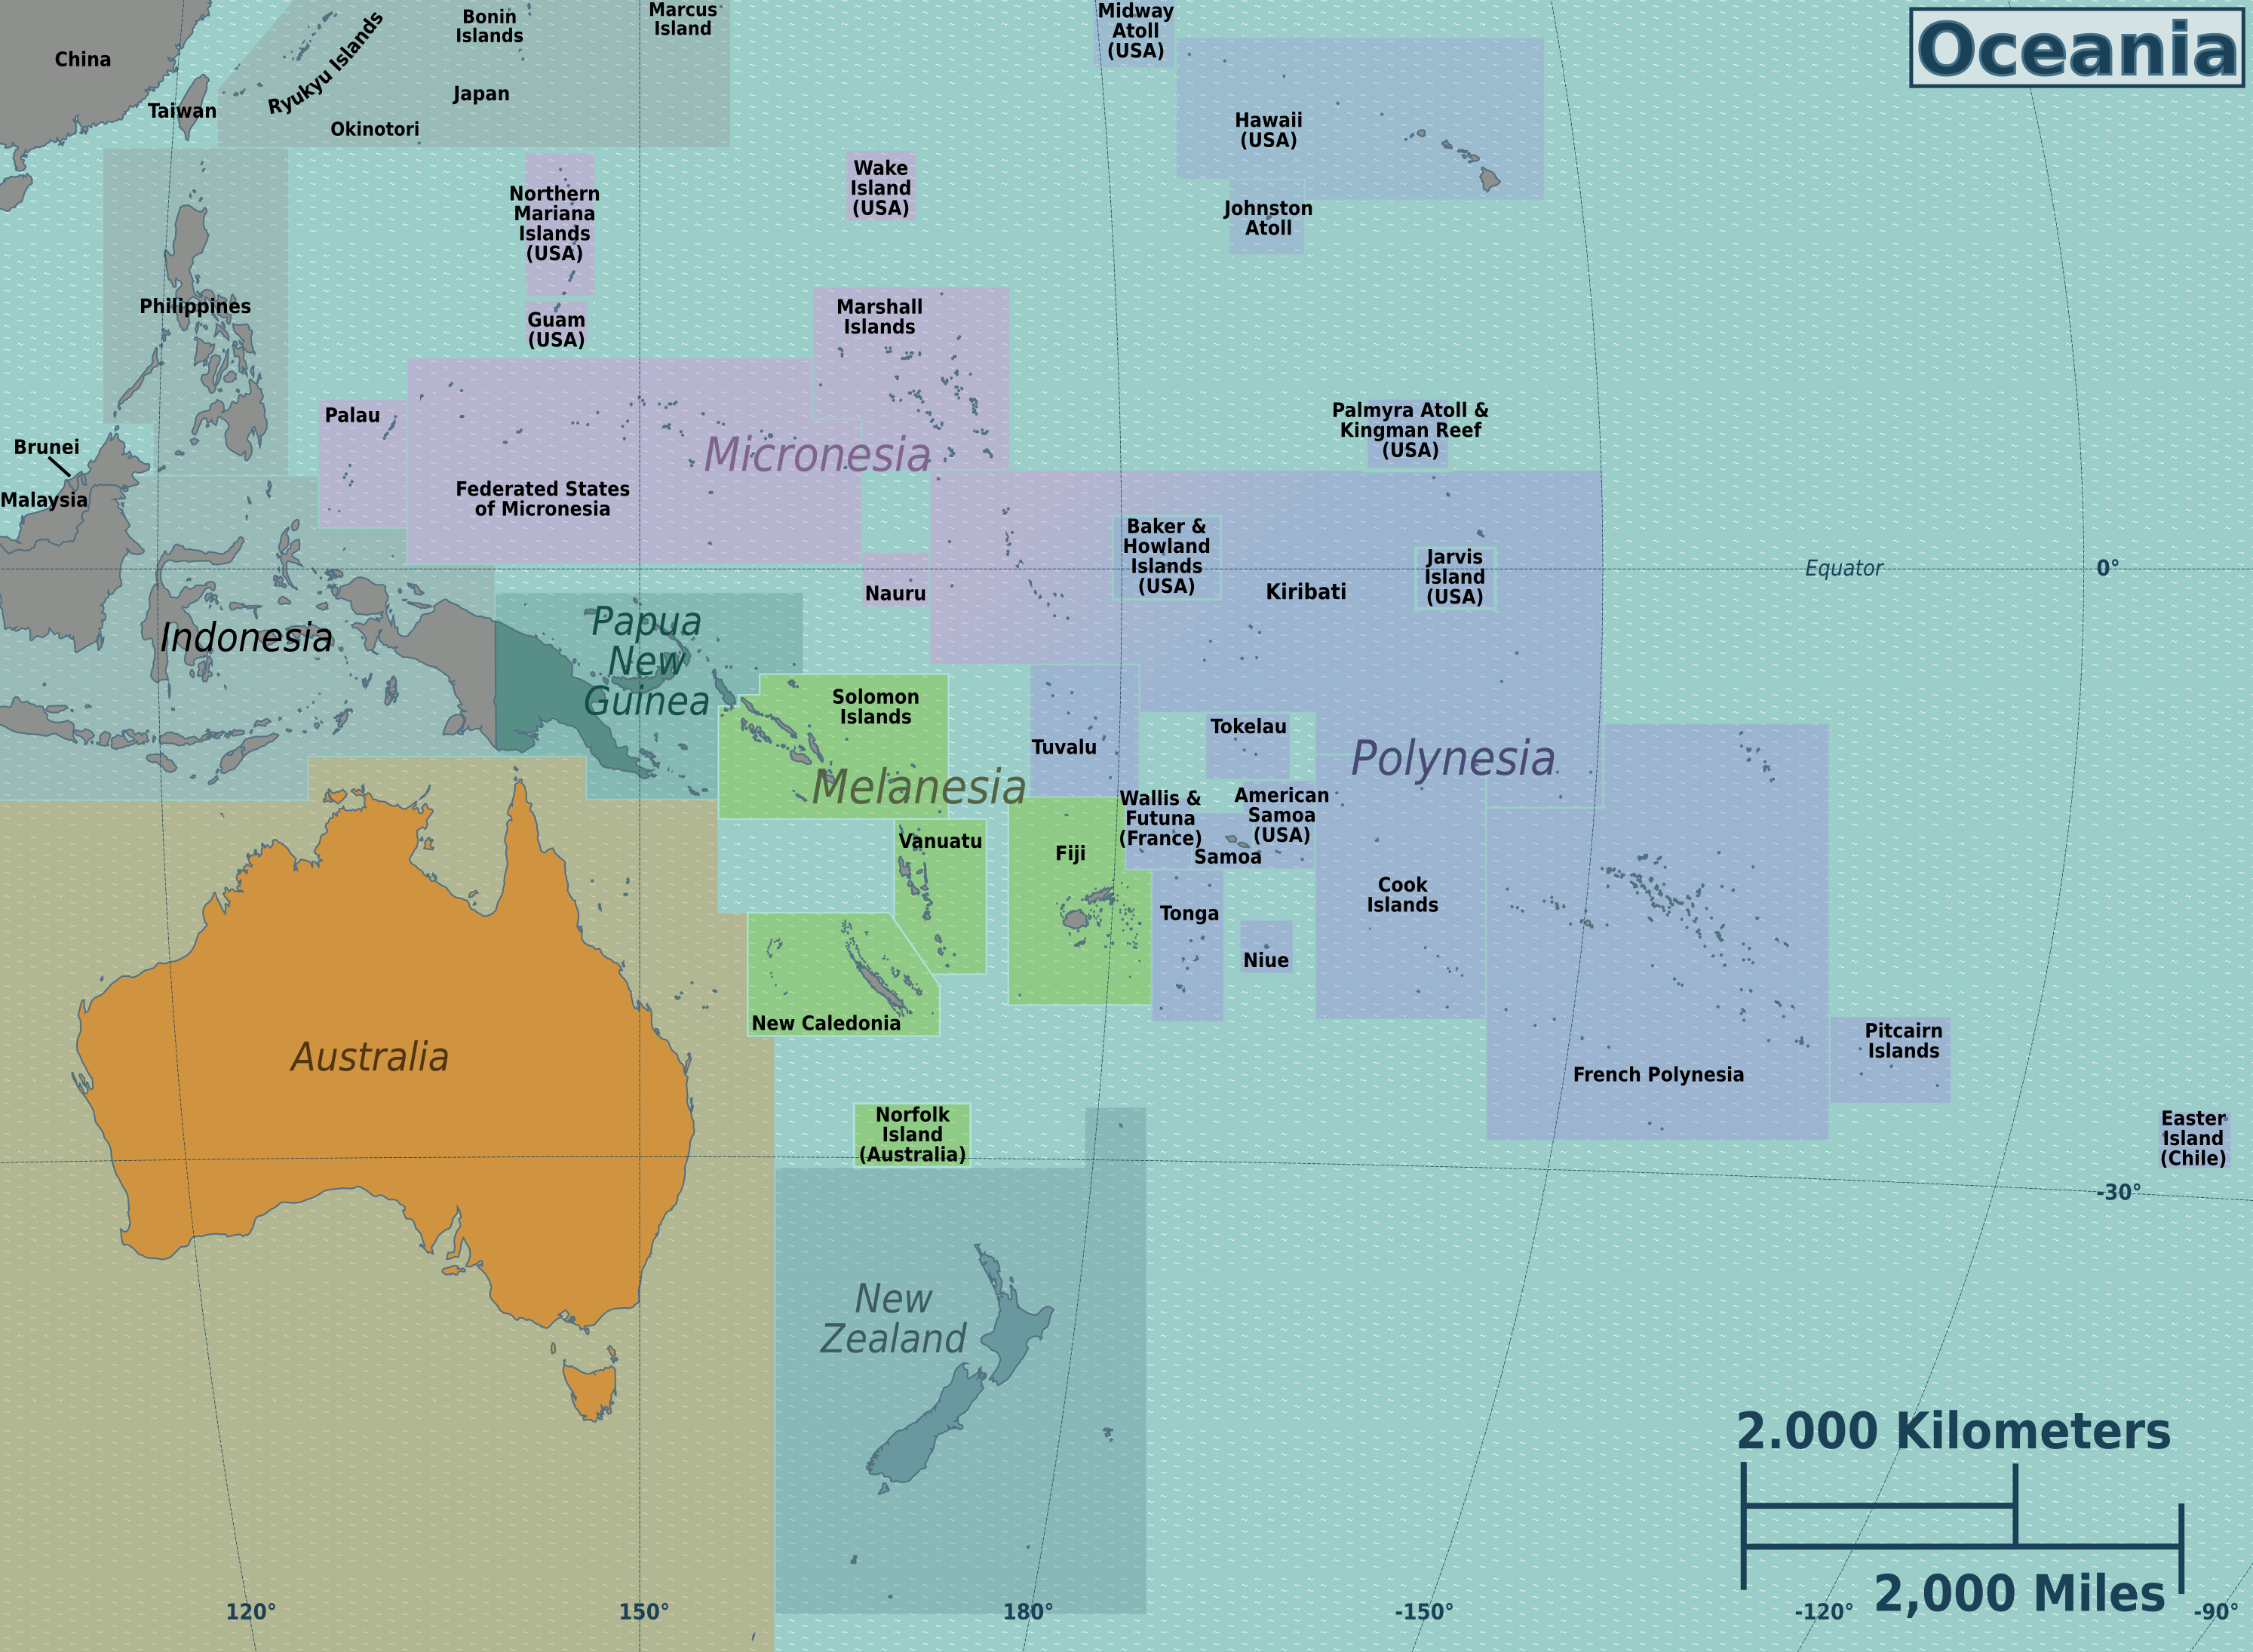 File:Oceania regions map.png - Wikimedia Commons